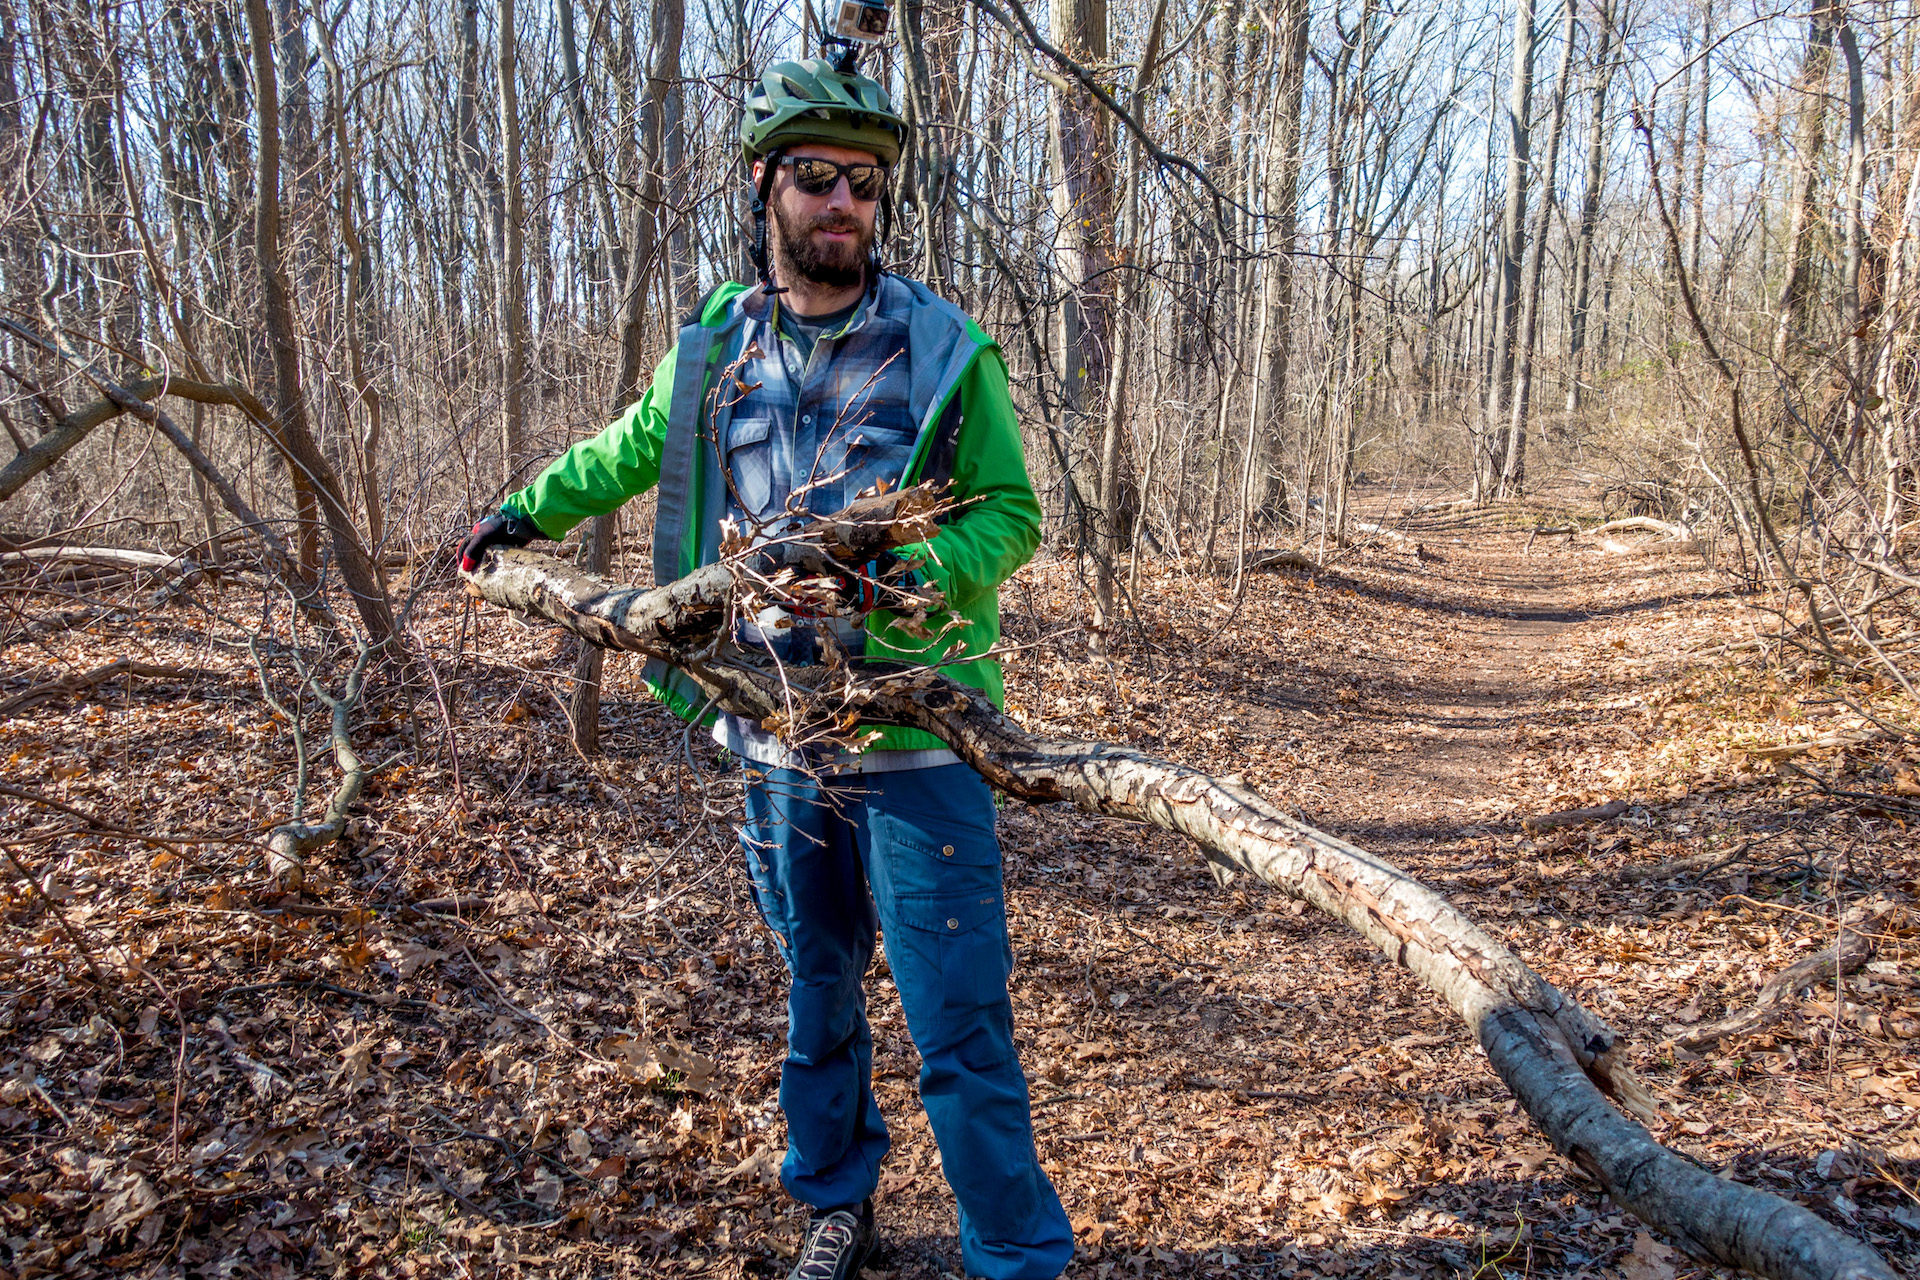 Mountain Bikers do their part to keep the trails clean.